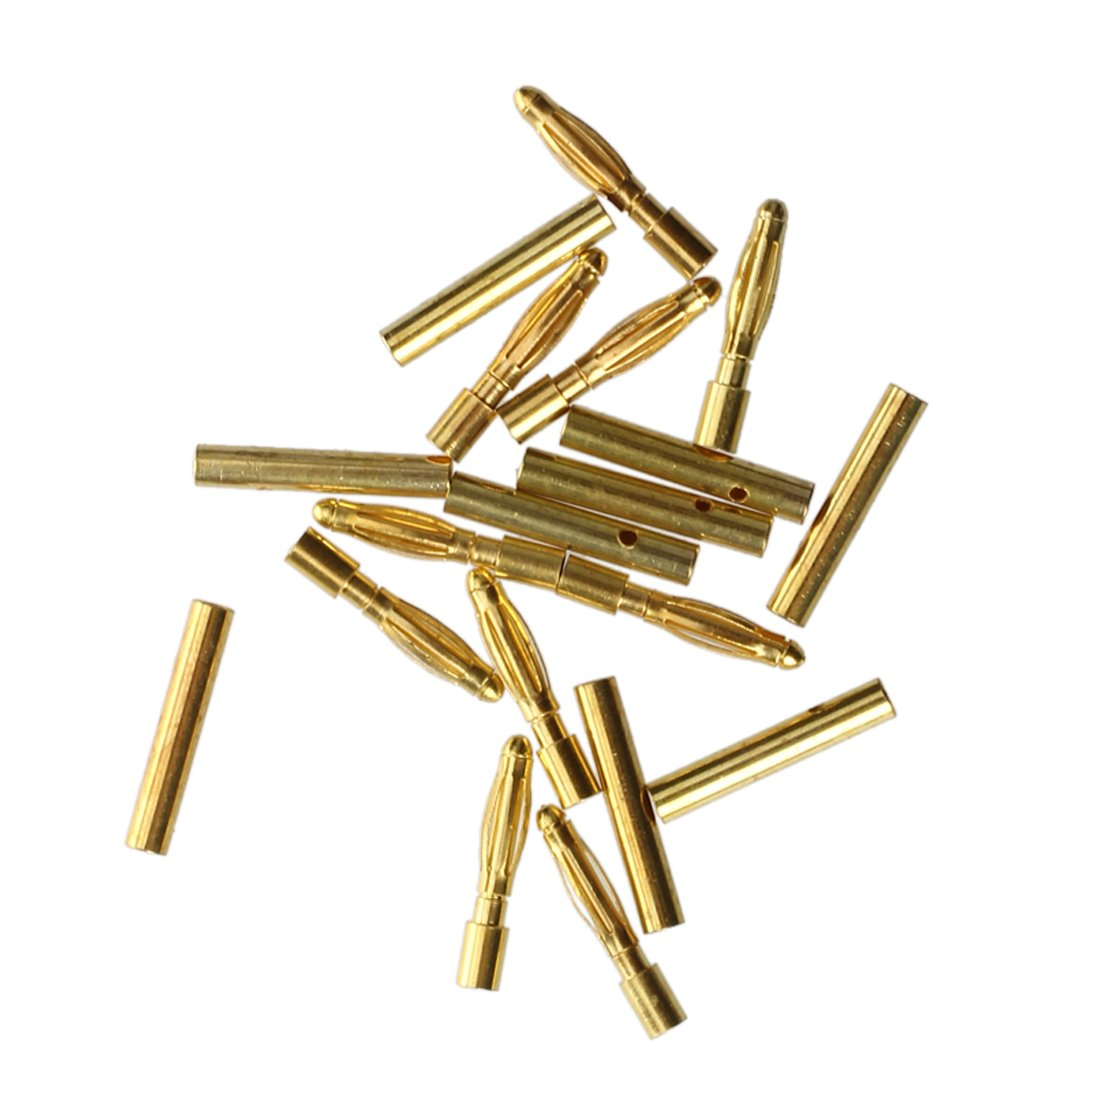 SODIAL(R) 10 Pairs 2.0mm Copper Bullet Banana Plug Connector Male Female Golden 019622